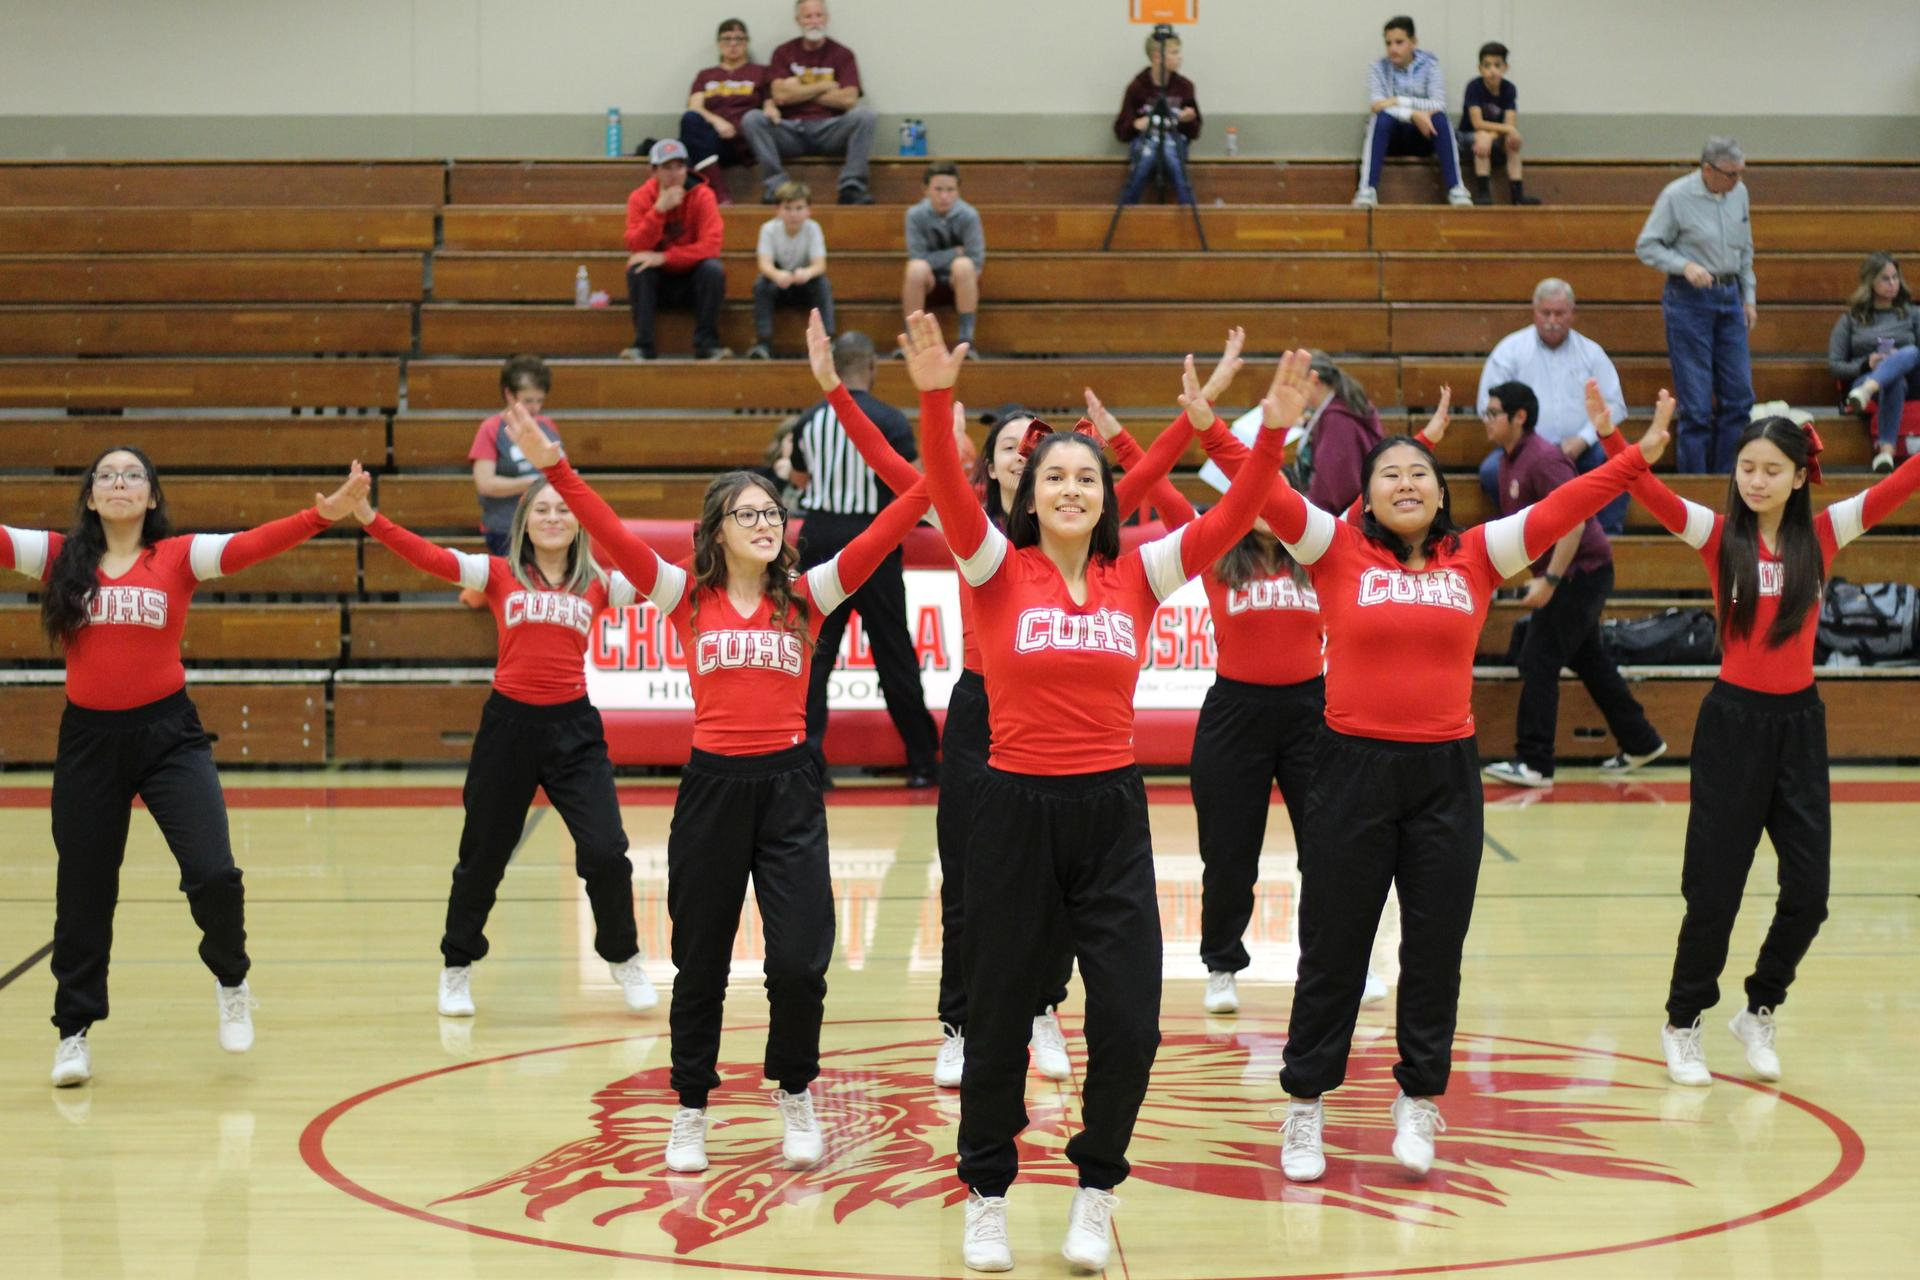 cheerleaders at the basketball game